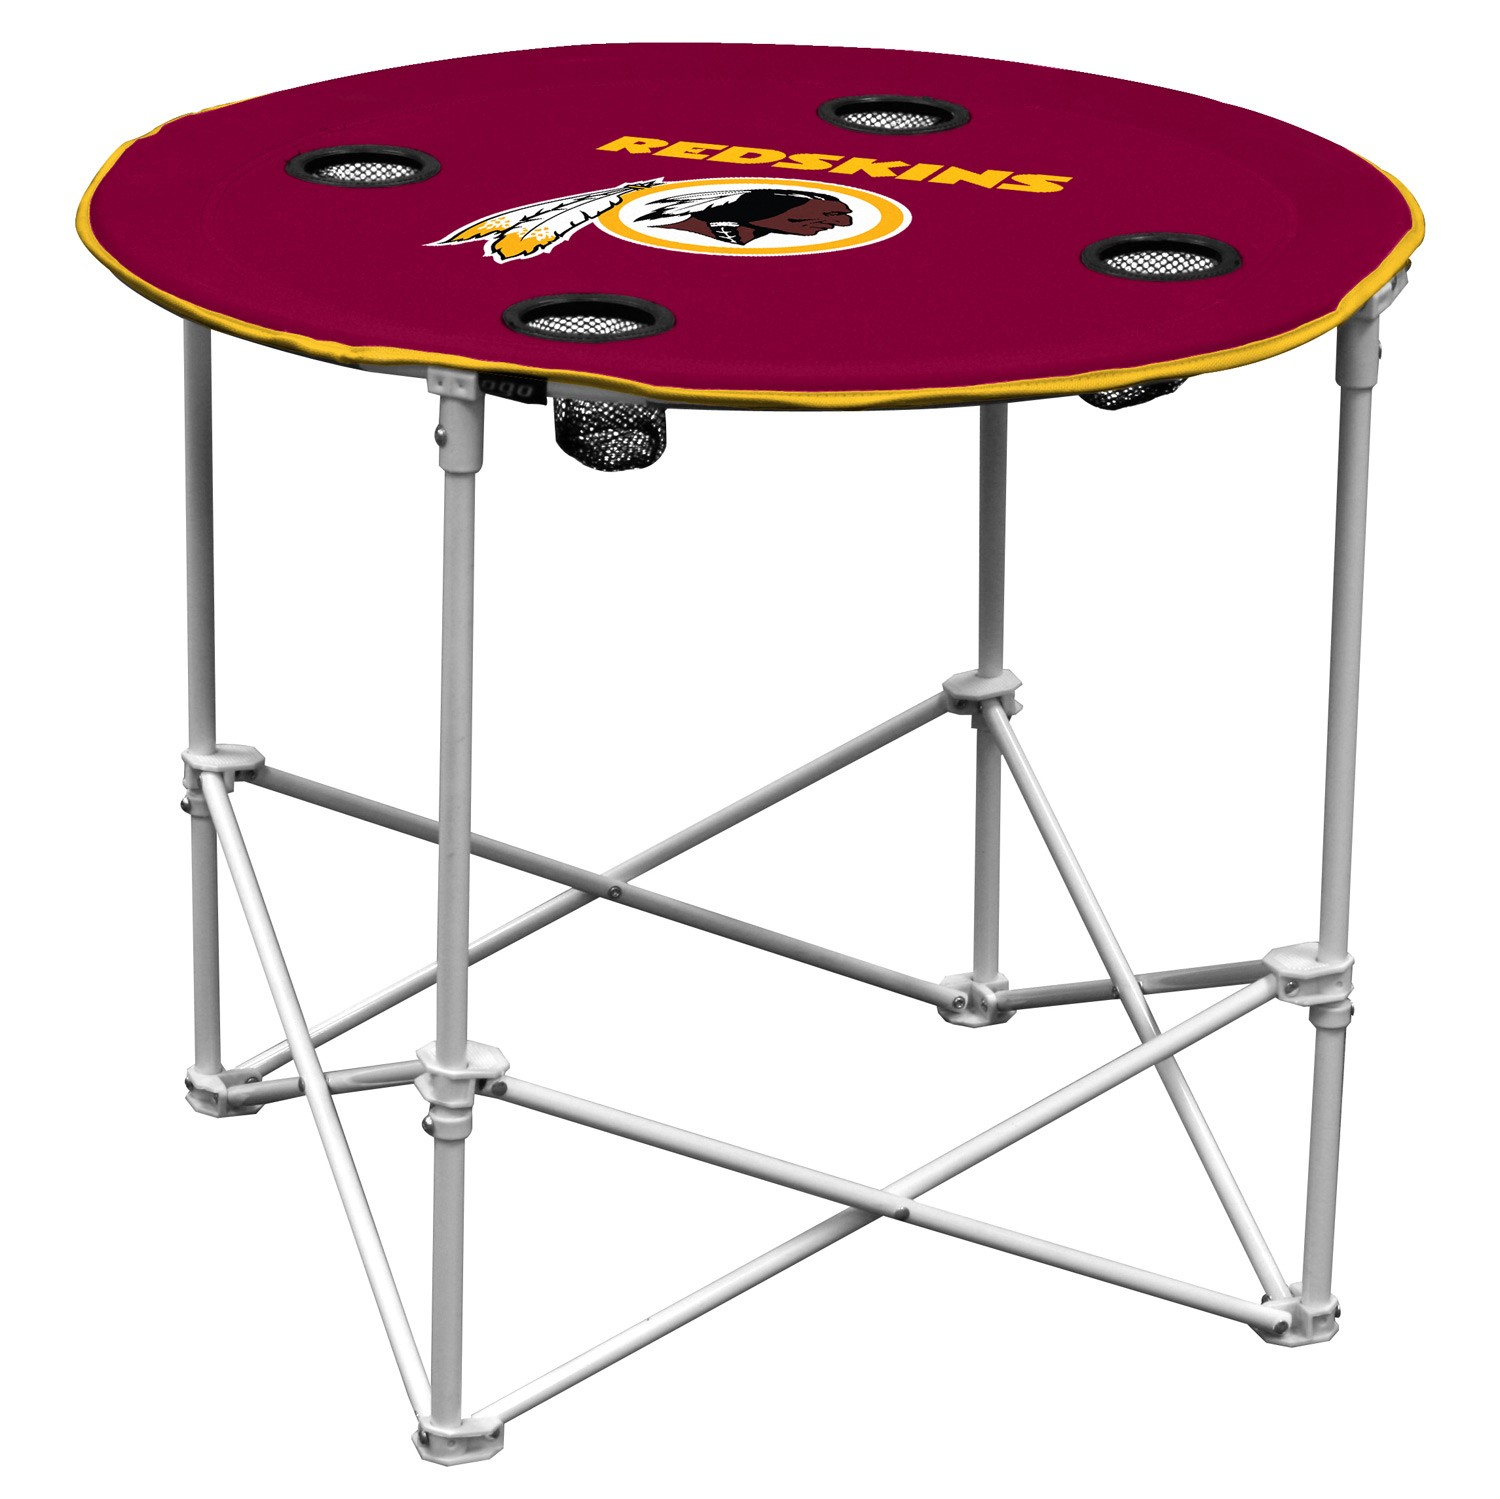 Redskins-table